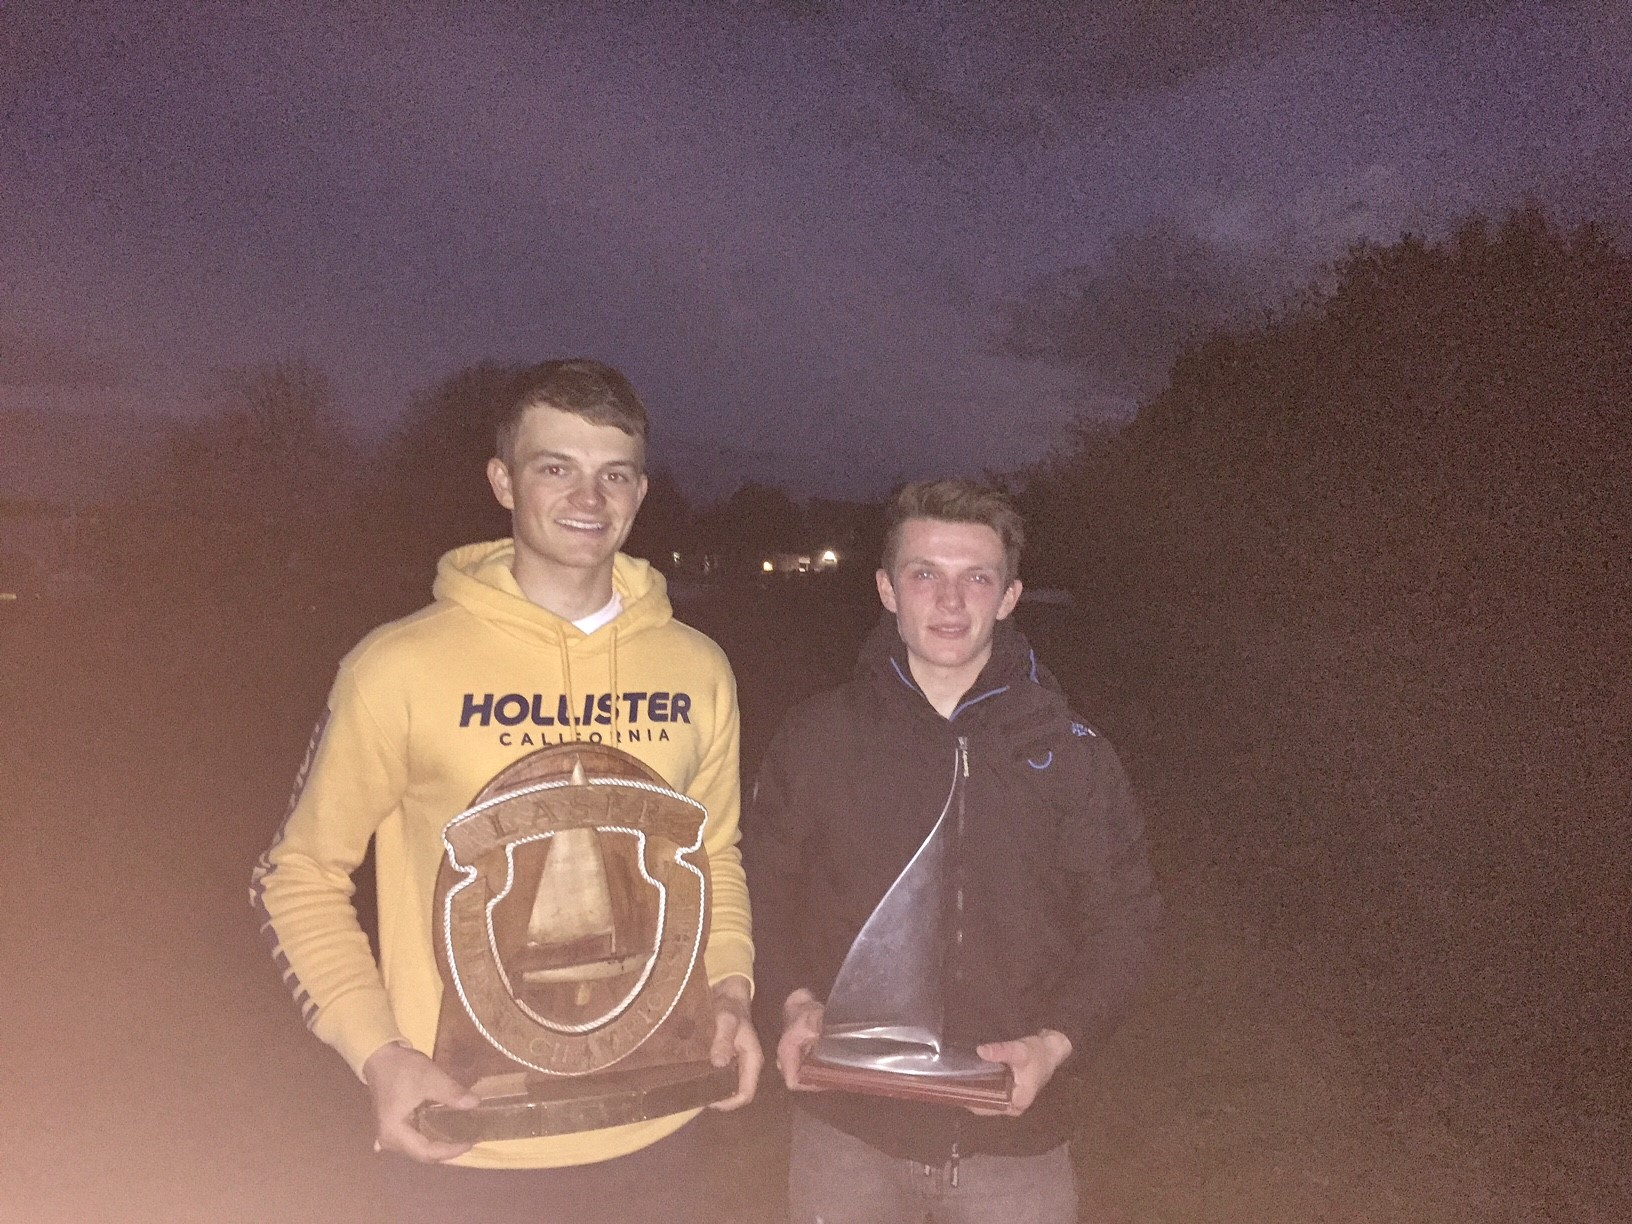 Me with the Laser Standard Inland Champion trophy and my younger brother Ben who won the Laser Radial Inland Championship!